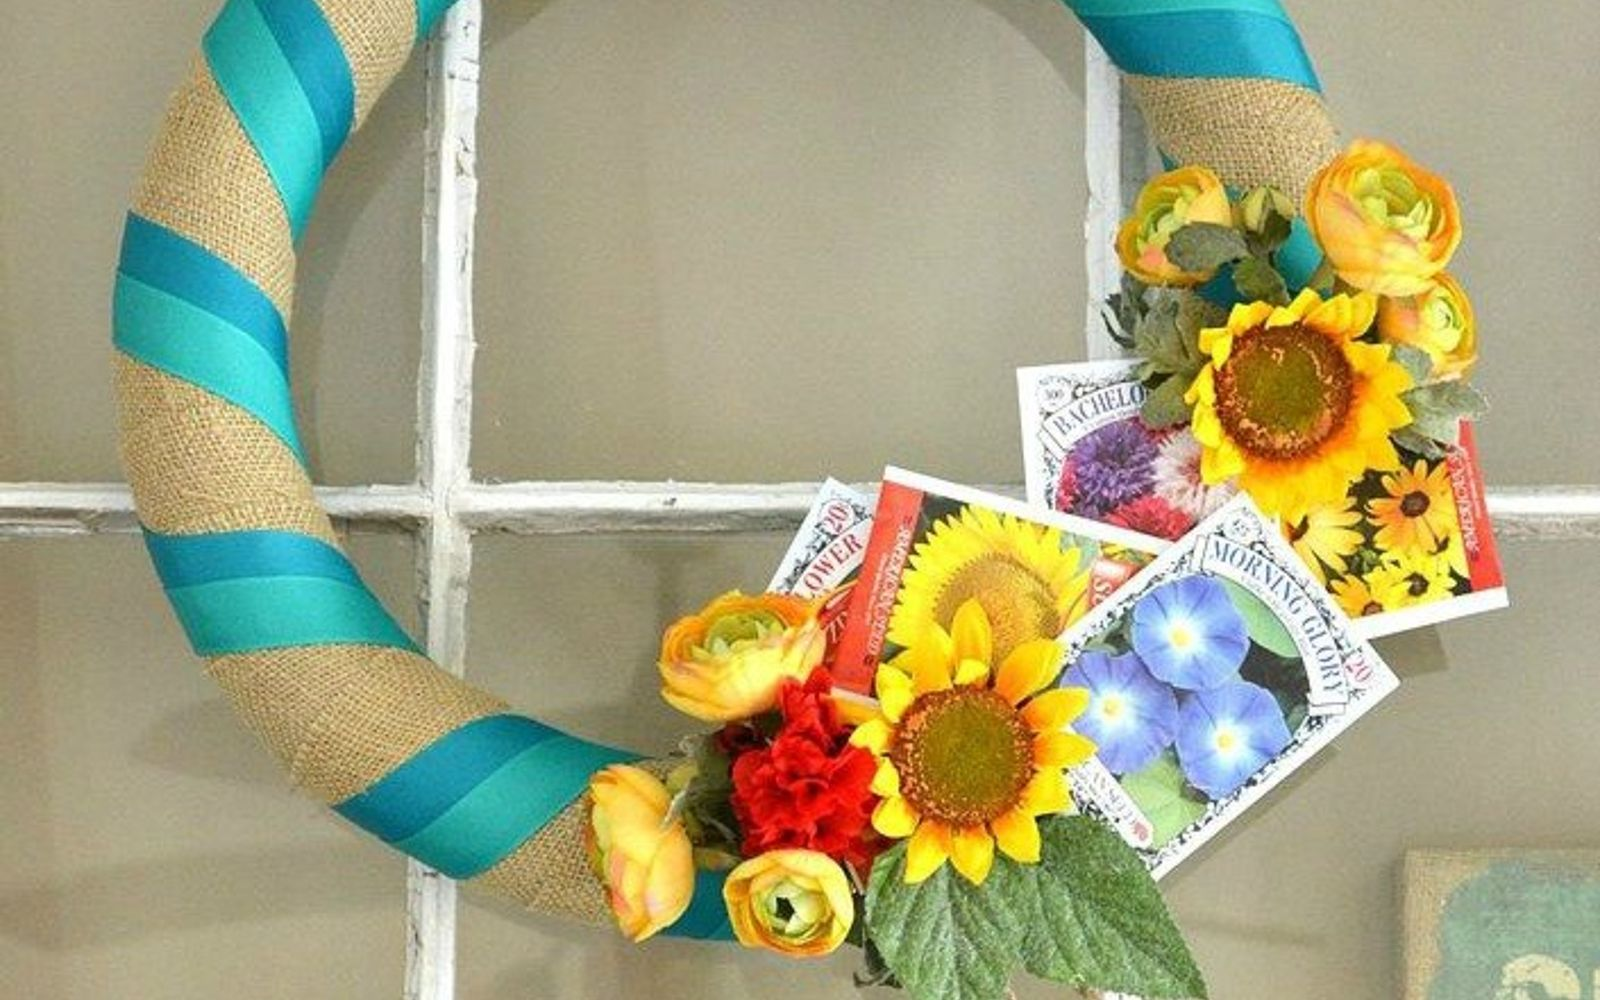 s 31 gorgeous spring wreaths that will make your neighbors smile, crafts, seasonal holiday decor, wreaths, Add some seed packets to a simple wreath